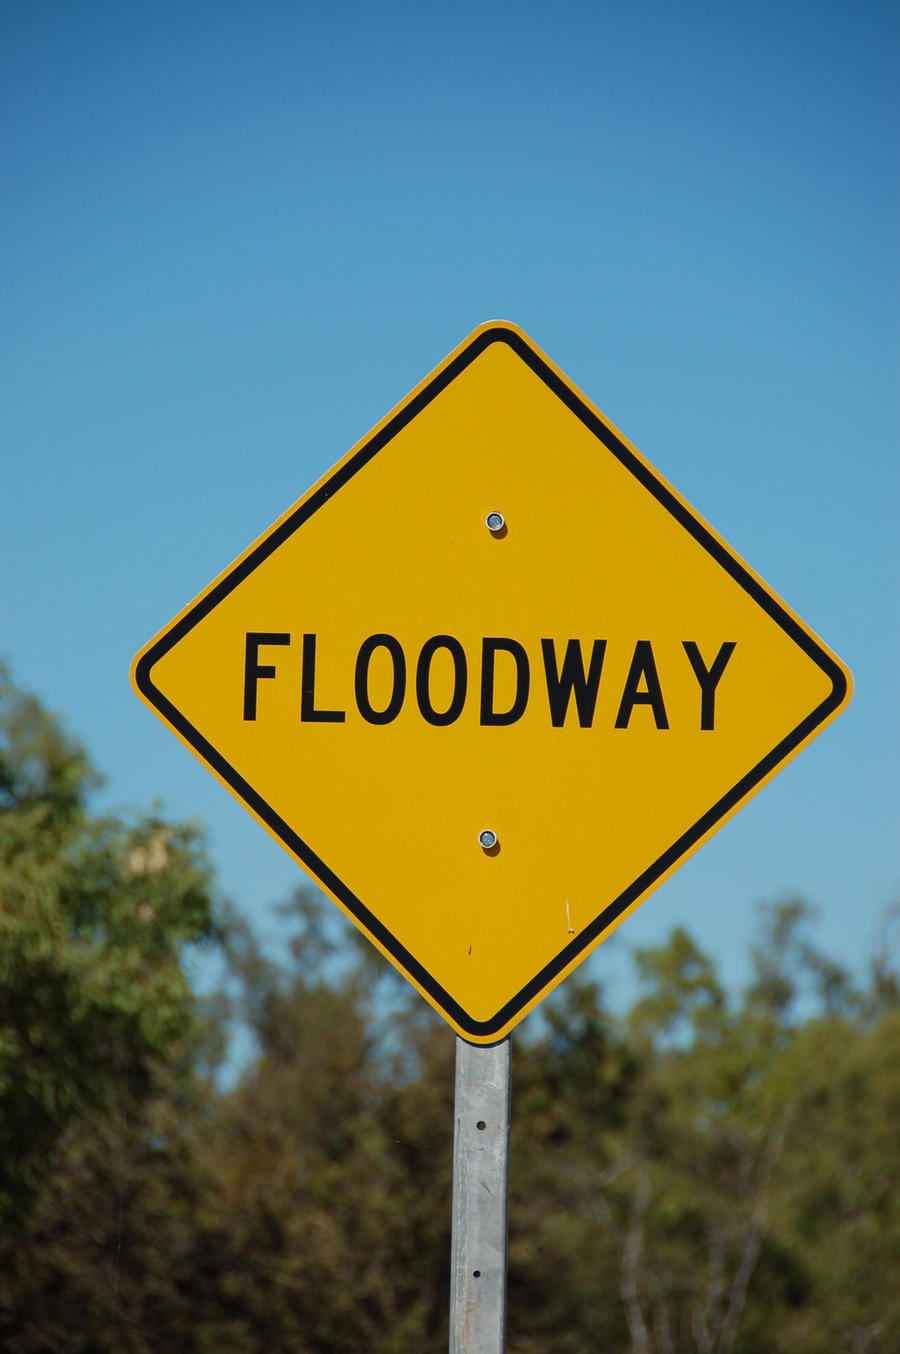 Floodway Sign 4771841